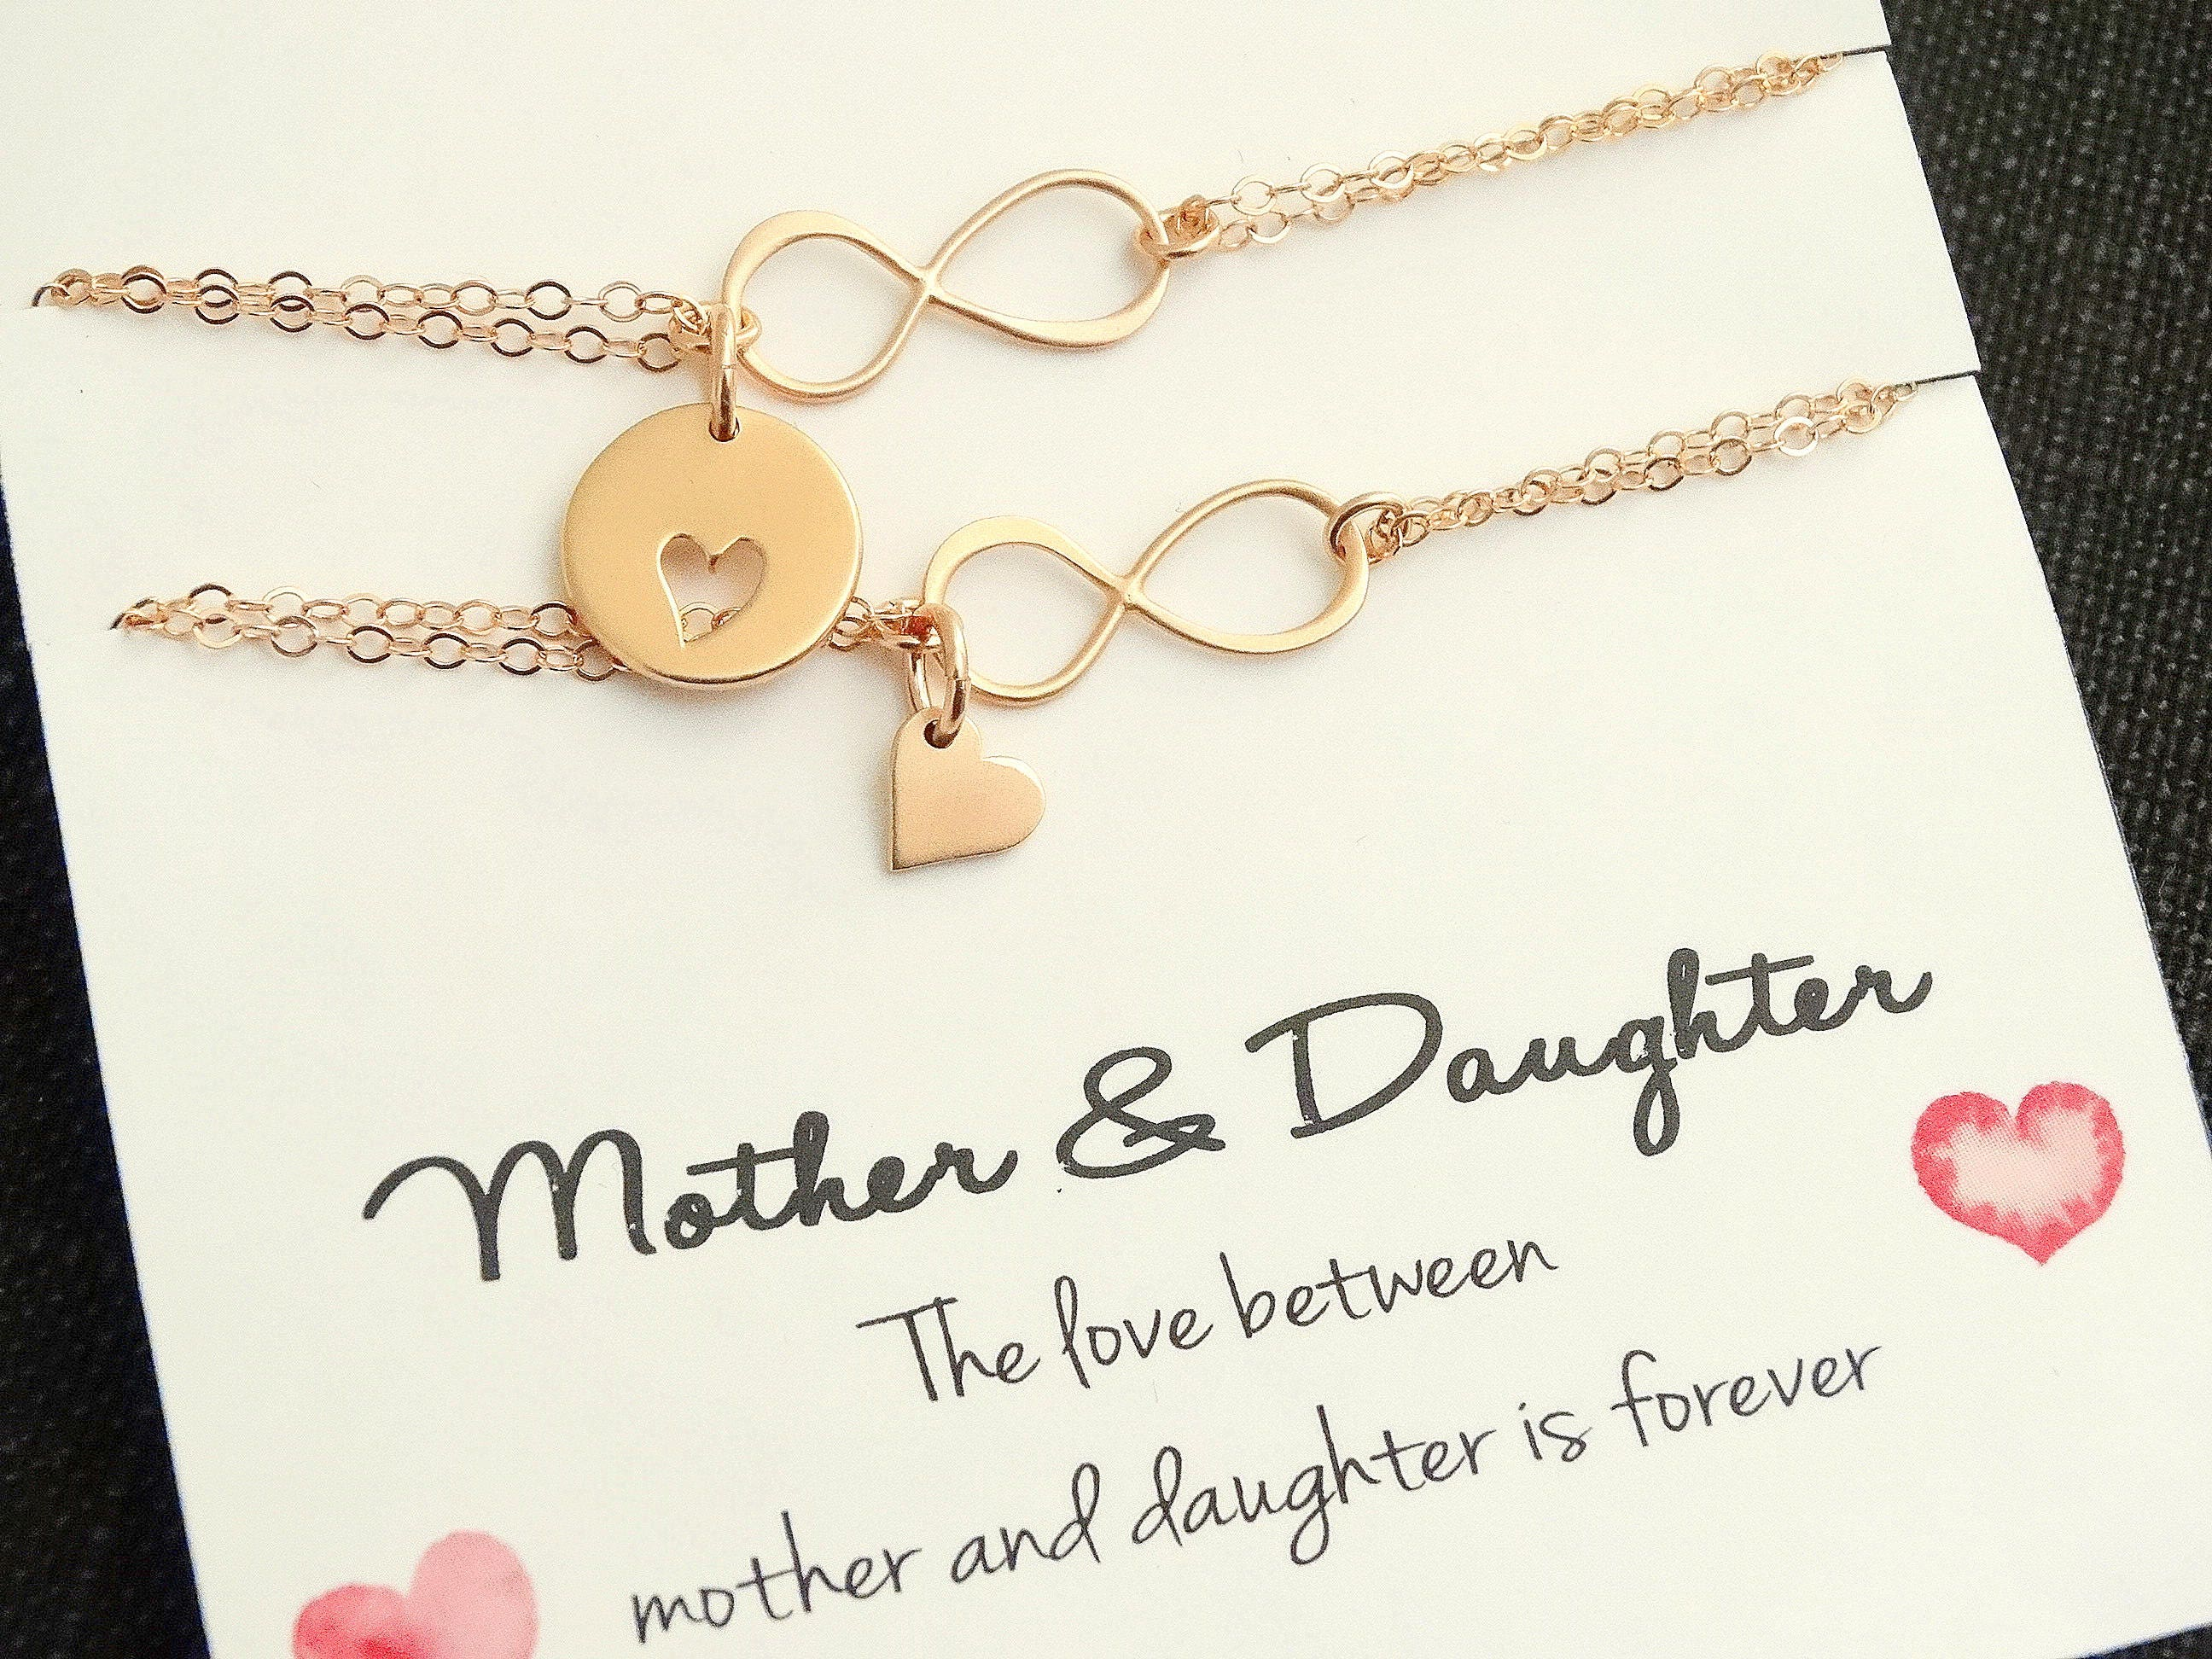 s am i mothers bracelets img goodbye these bracelet offering day gift idea mother ordinary